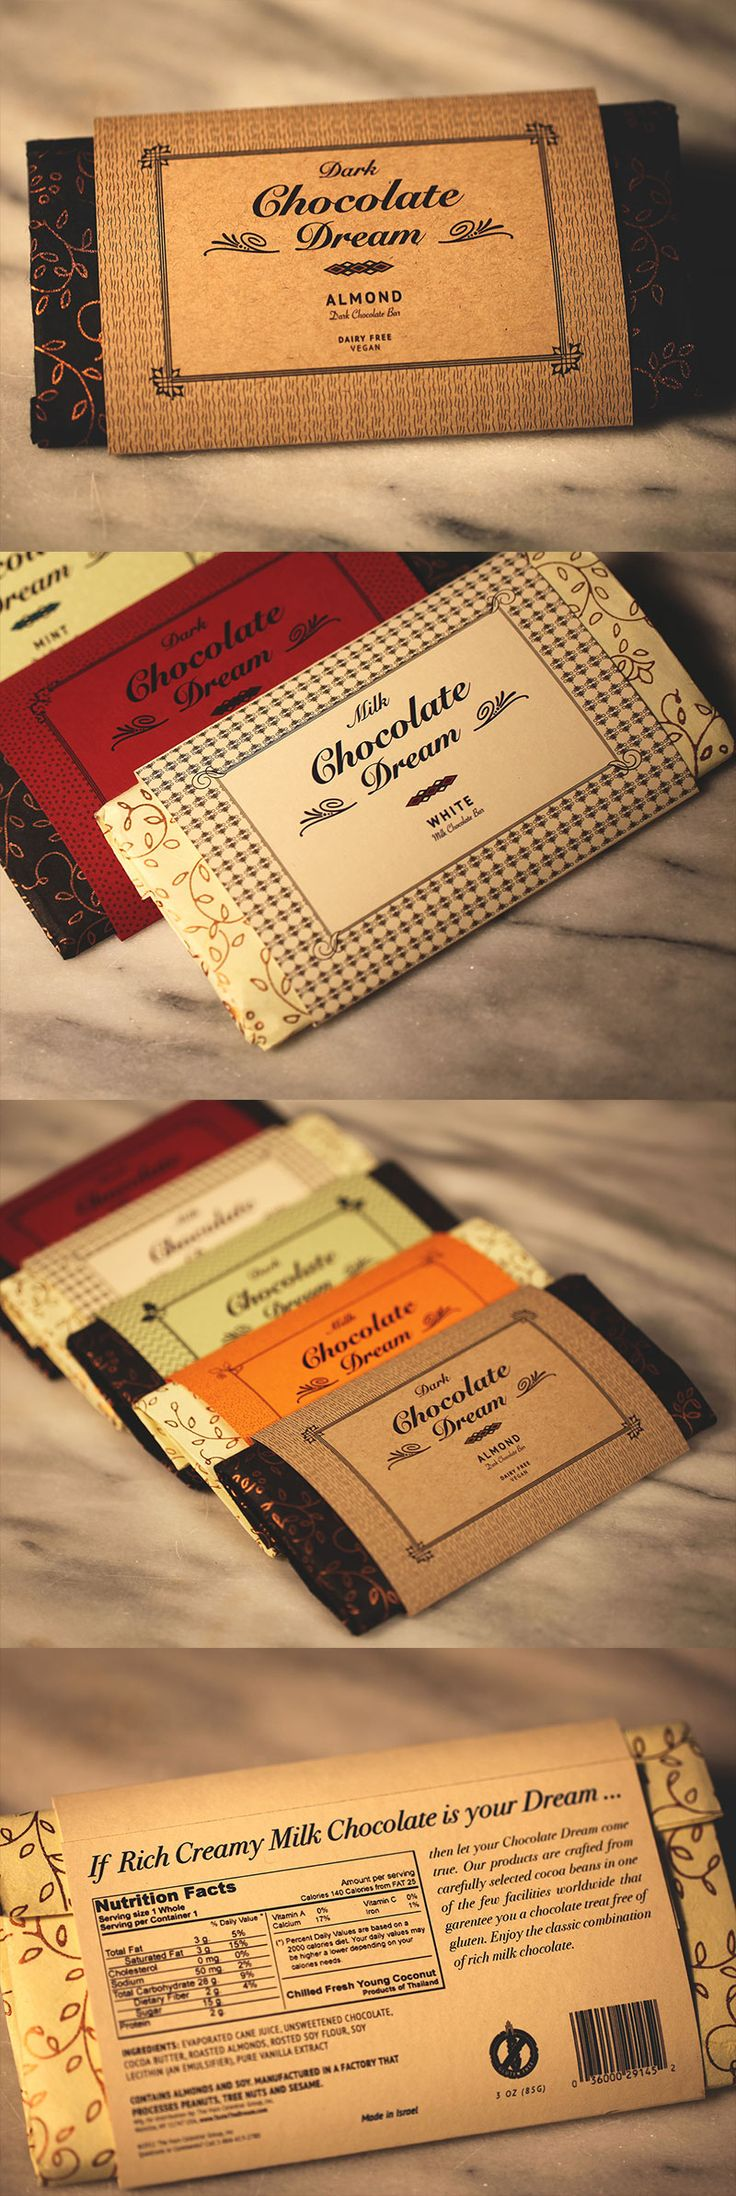 Best Chocolate Images On Pinterest Chocolate - Delicious chocolates crafted japanese words texture